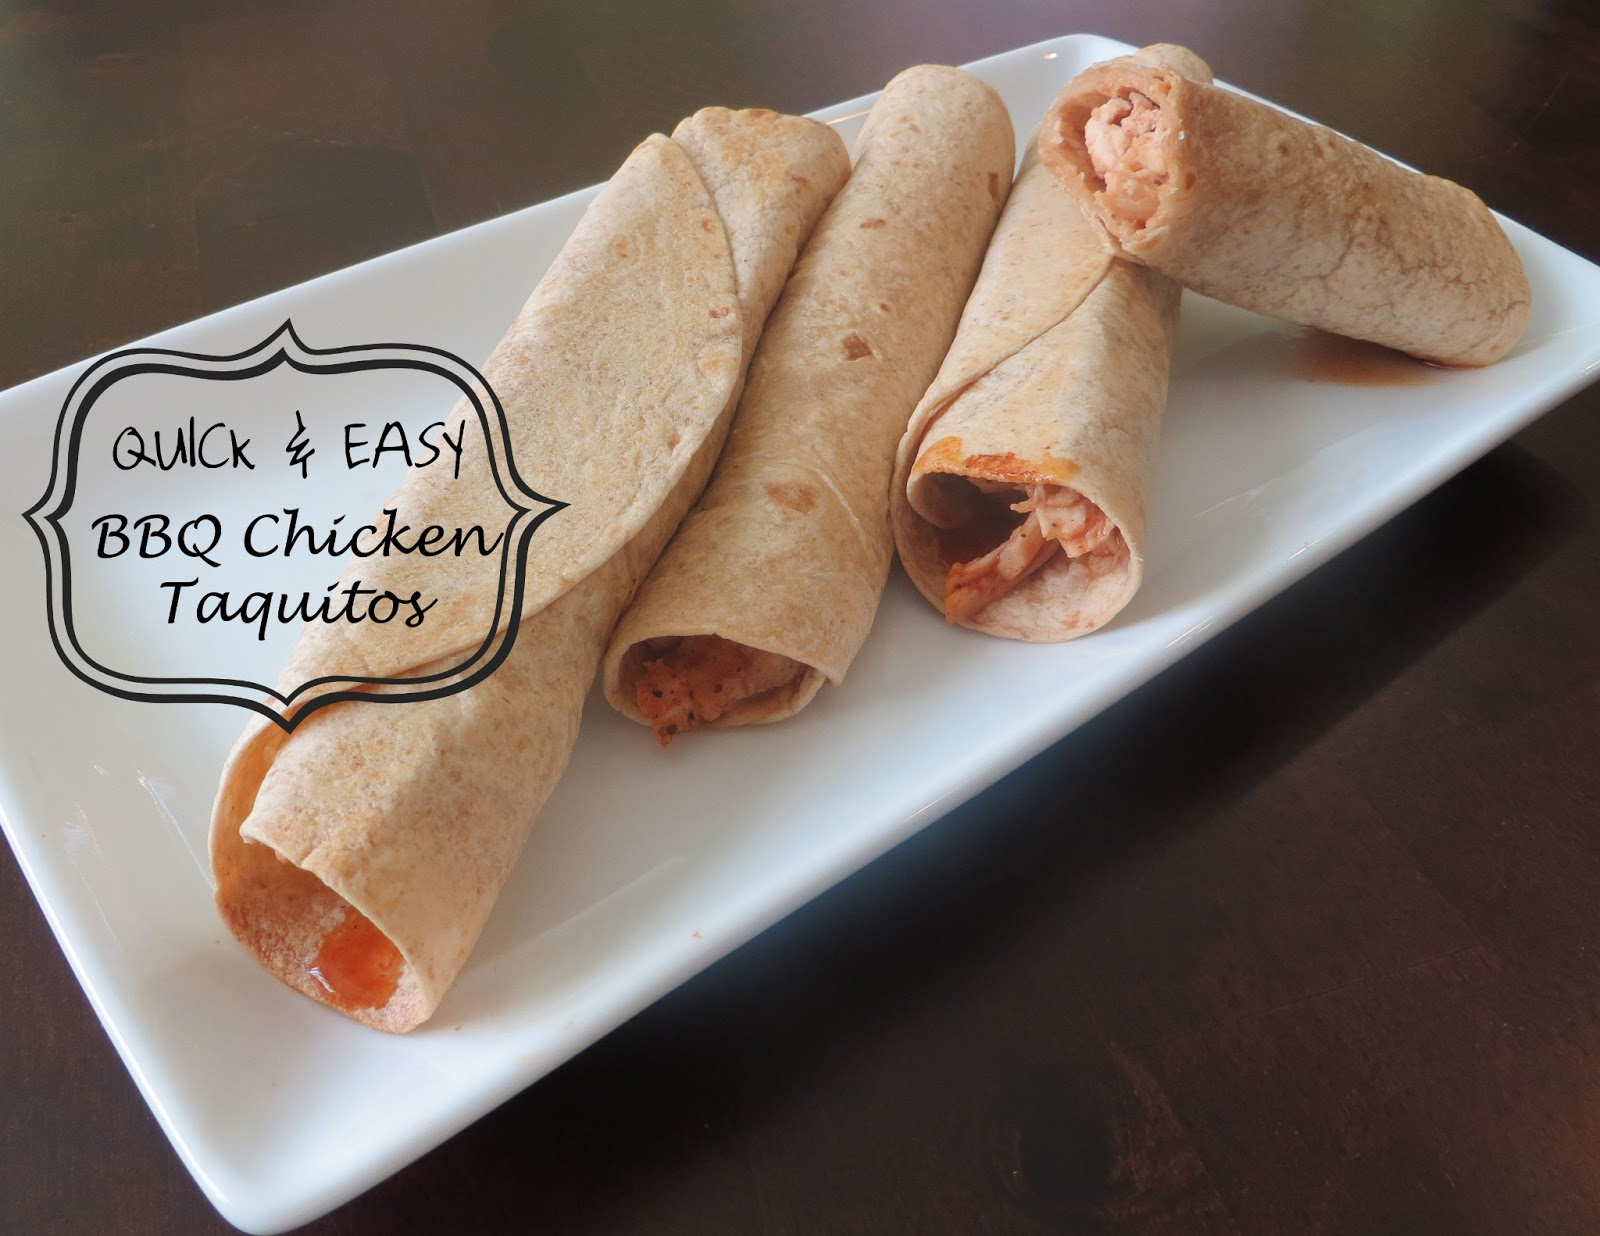 Quick and Easy recipes, bbq chicken, taquitos, chicken recipes